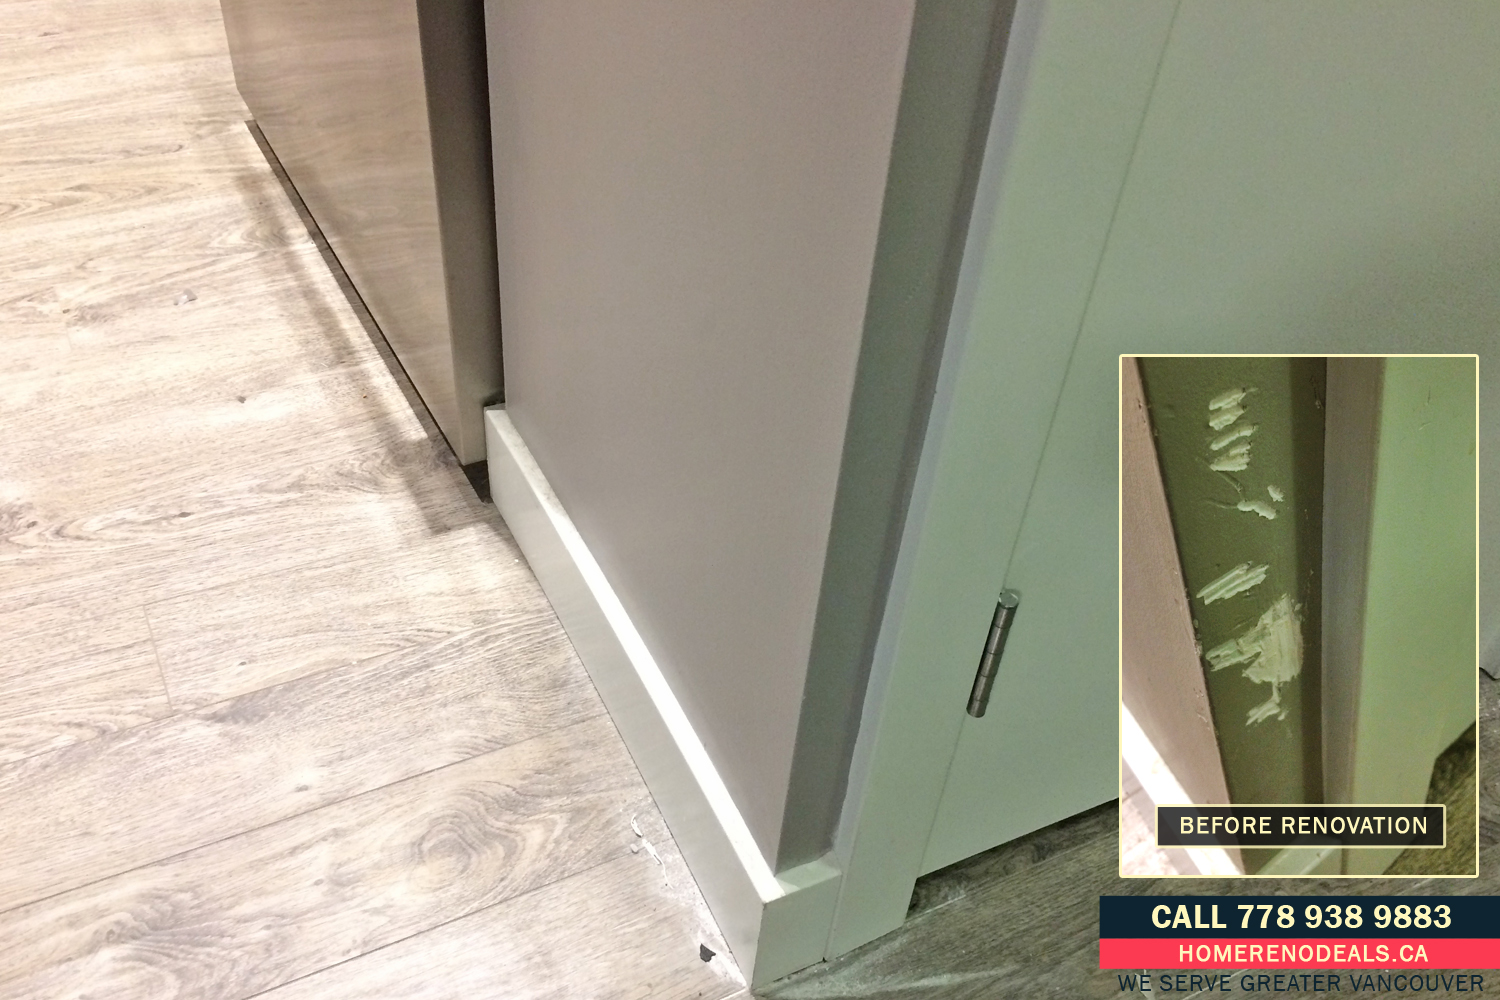 Same Day Drywall Repair Services in Greater Vancouver, BC